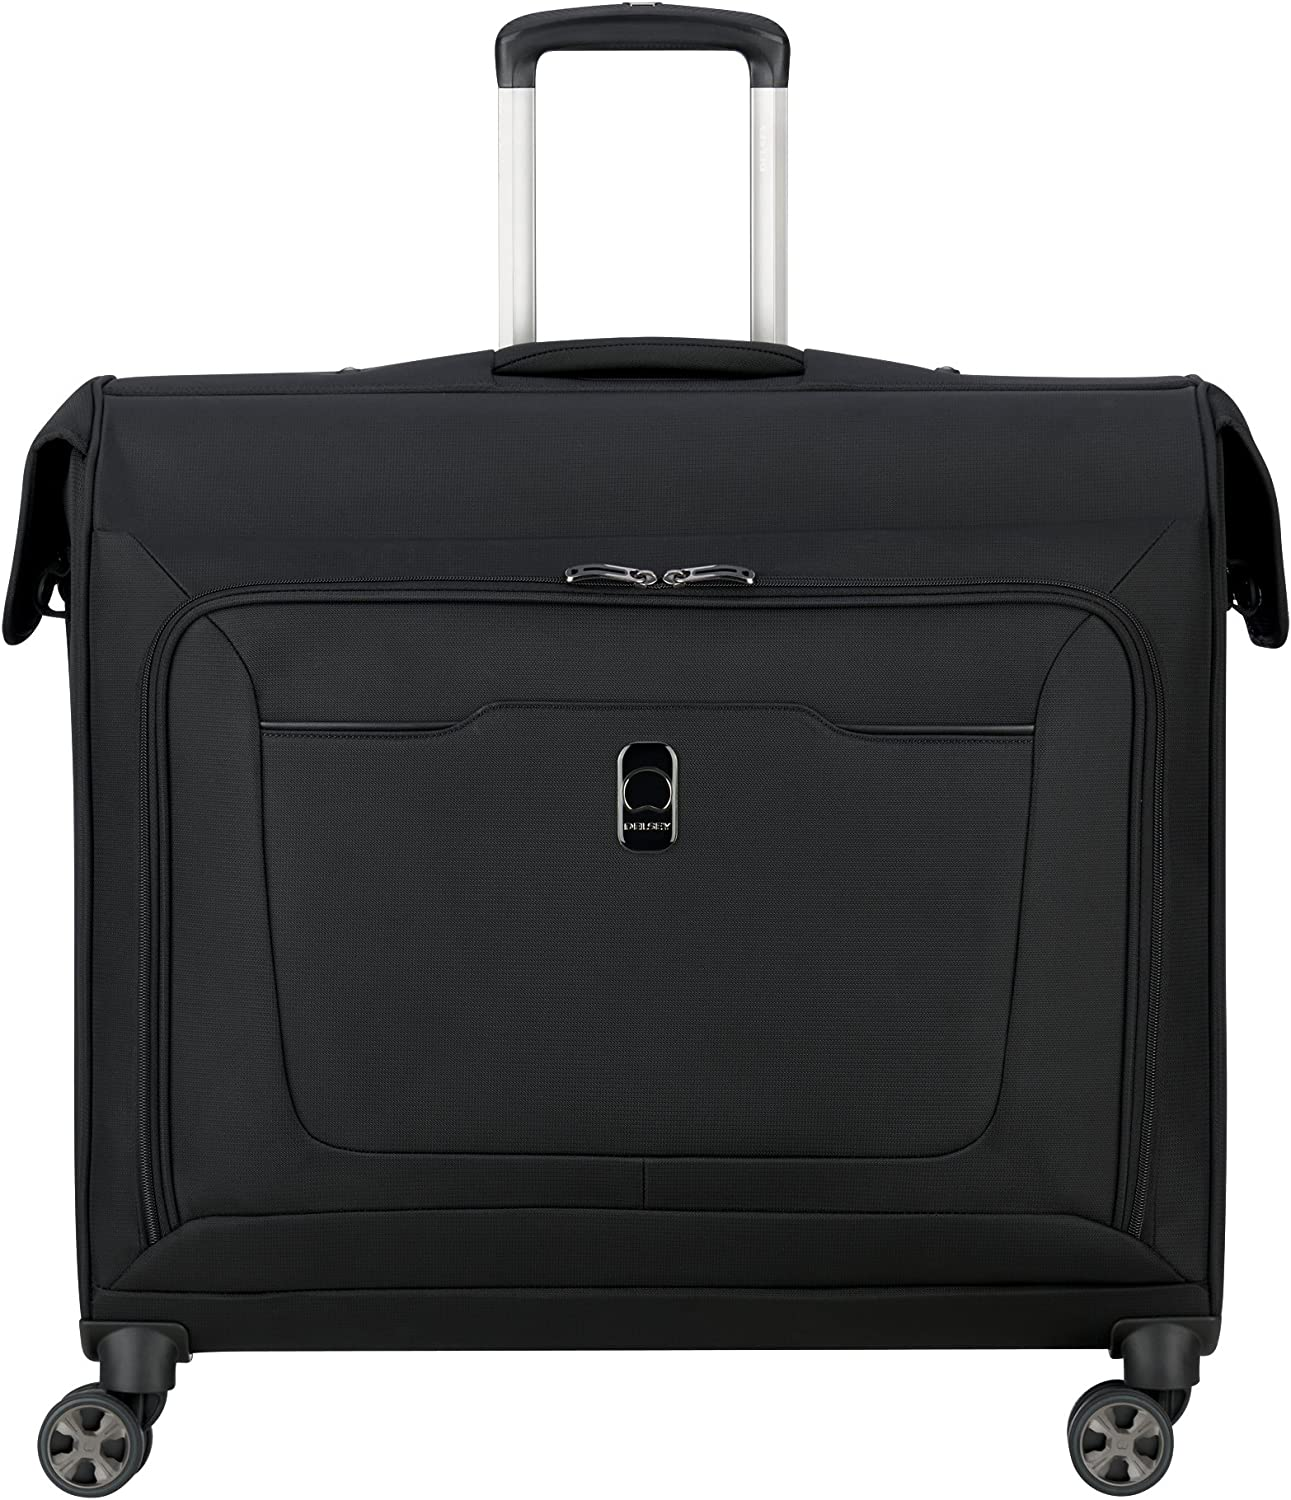 DELSEY Paris Hyperglide Softside Garment Travel Bag with Spinner Wheels, Black, One Size